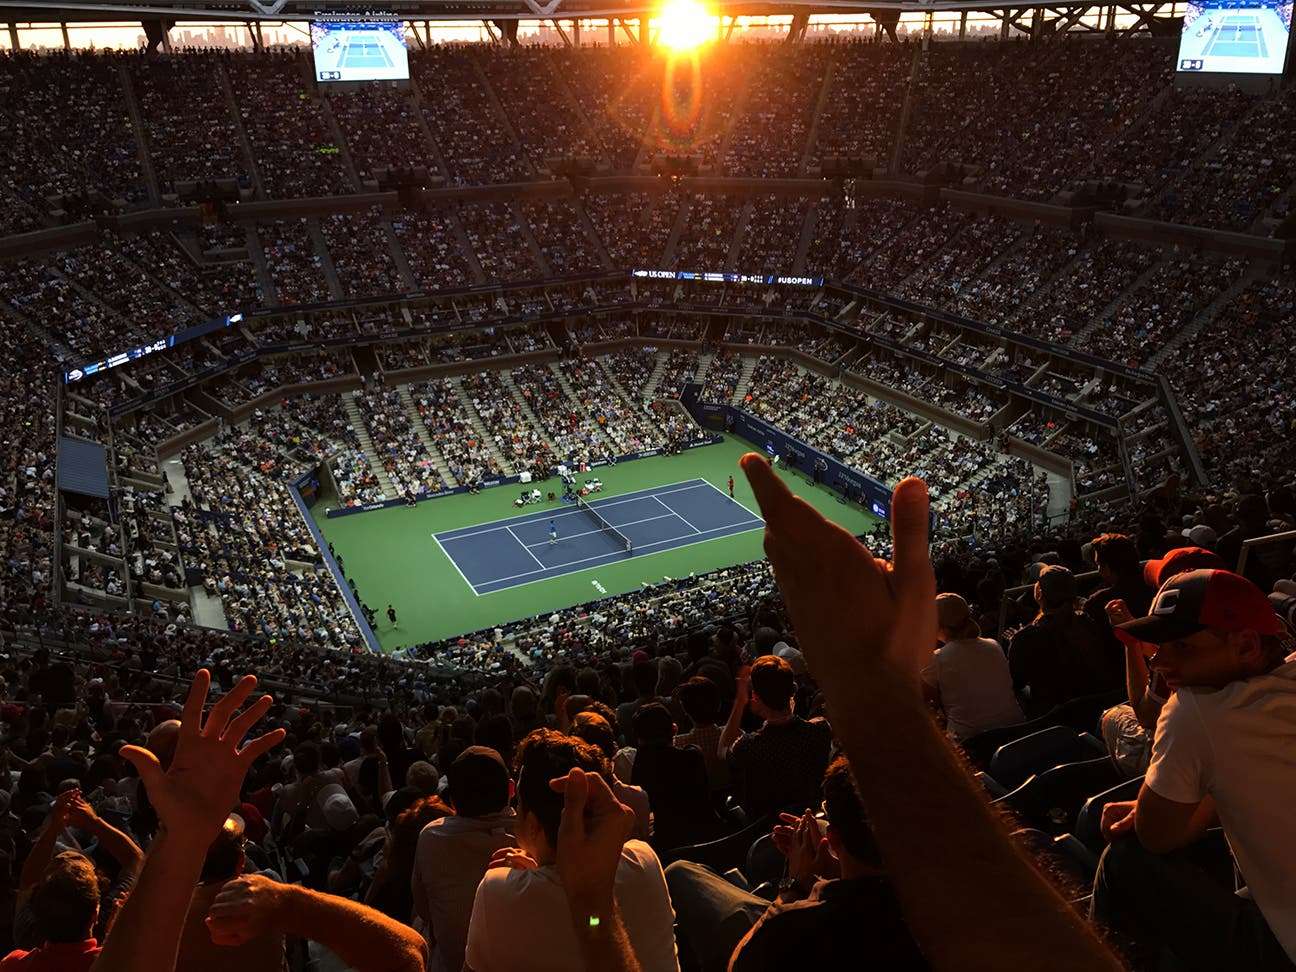 NEW YORK, NY - SEPTEMBER 11: The crowd erupts during the men's final action between Novak Djokovic and Stan Wawrinka during Day 14 of the 2016 US Open at the USTA Billie Jean King National Tennis Center on September 11, 2016 in Queens. (Landon Nordeman for ESPN)